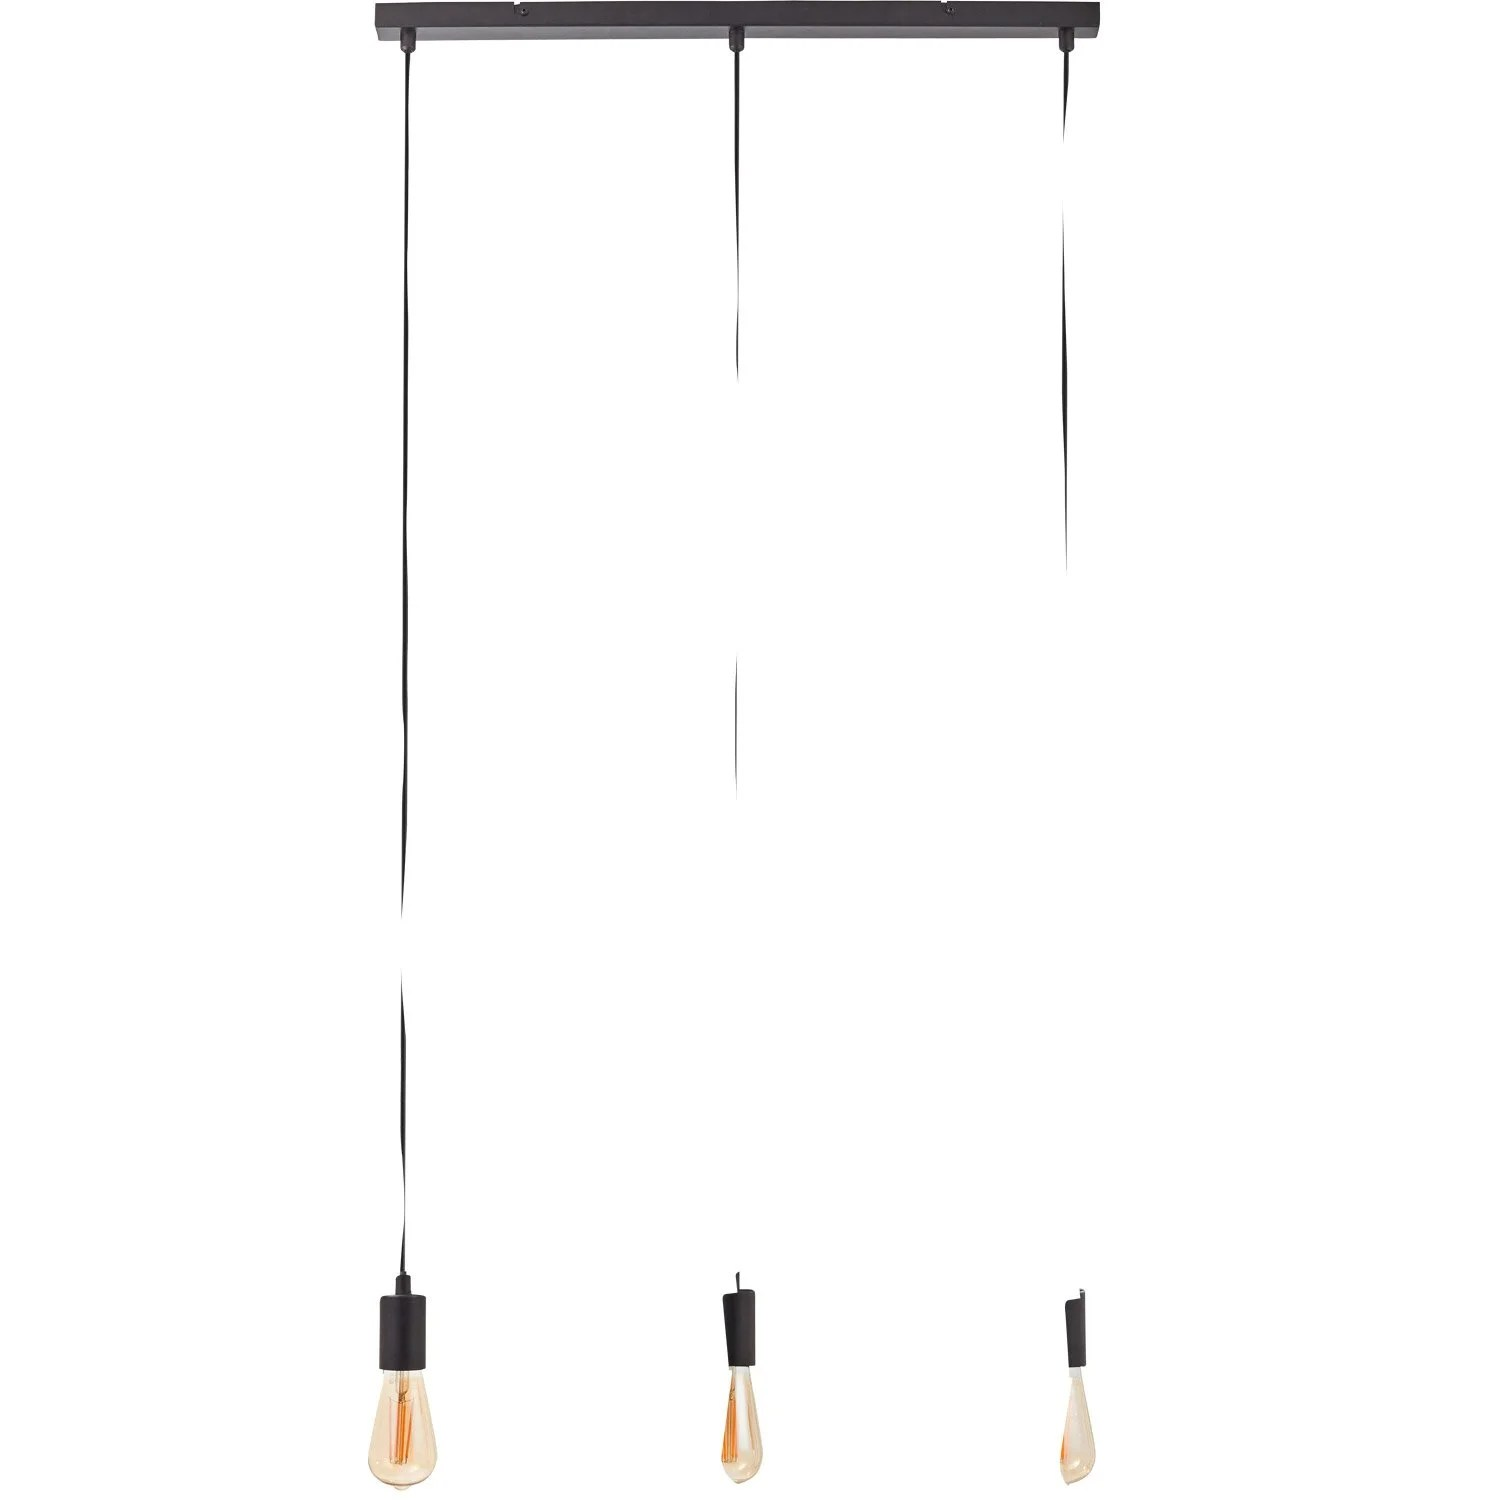 Leroy Merlin Luminaires Suspension Suspension Luminaire Noir Stunning Suspension Octo Noire